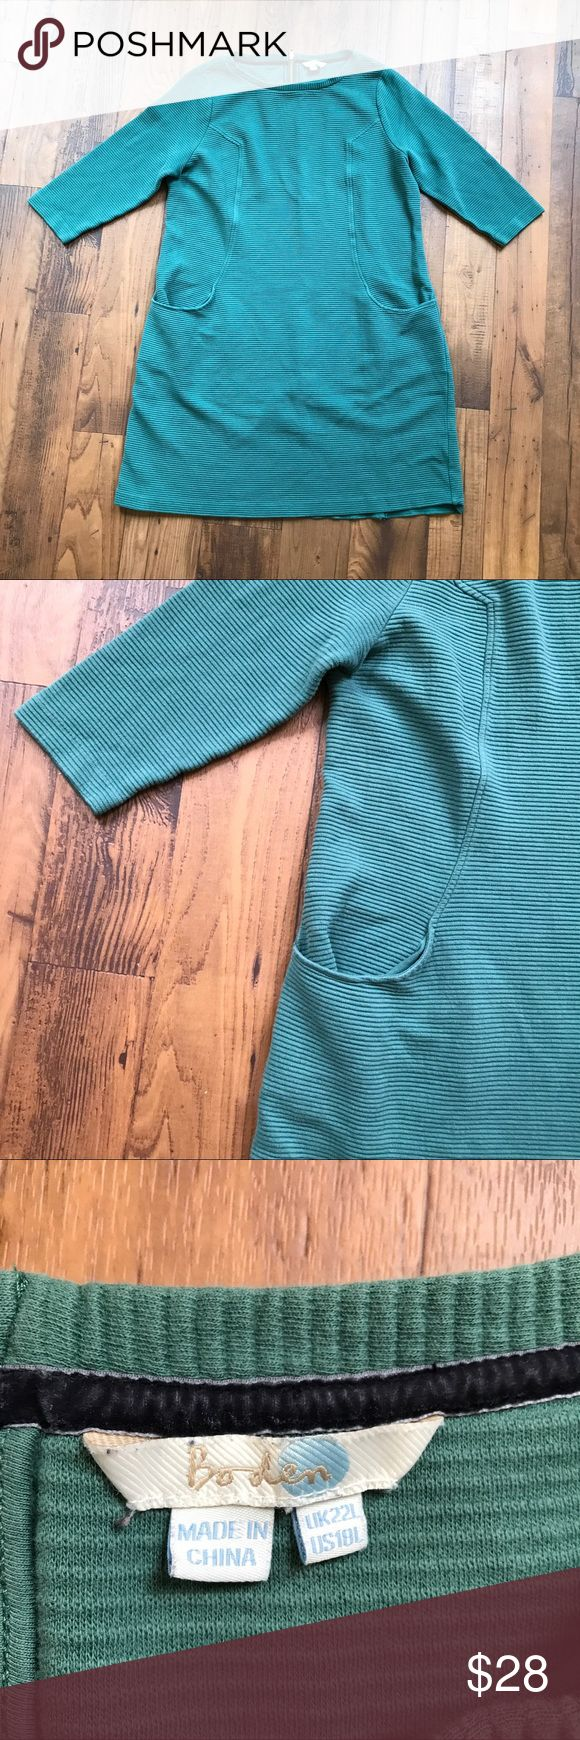 """Boden Green Sweater Dress Pockets Exposed Zipper Boden green sweater/sweatshirt dress. There are pockets on the front and an exposed zipper on the back. It is a size 18L. Armpit to armpit is about 22"""". The length of the dress is about 37"""". Boden Dresses"""